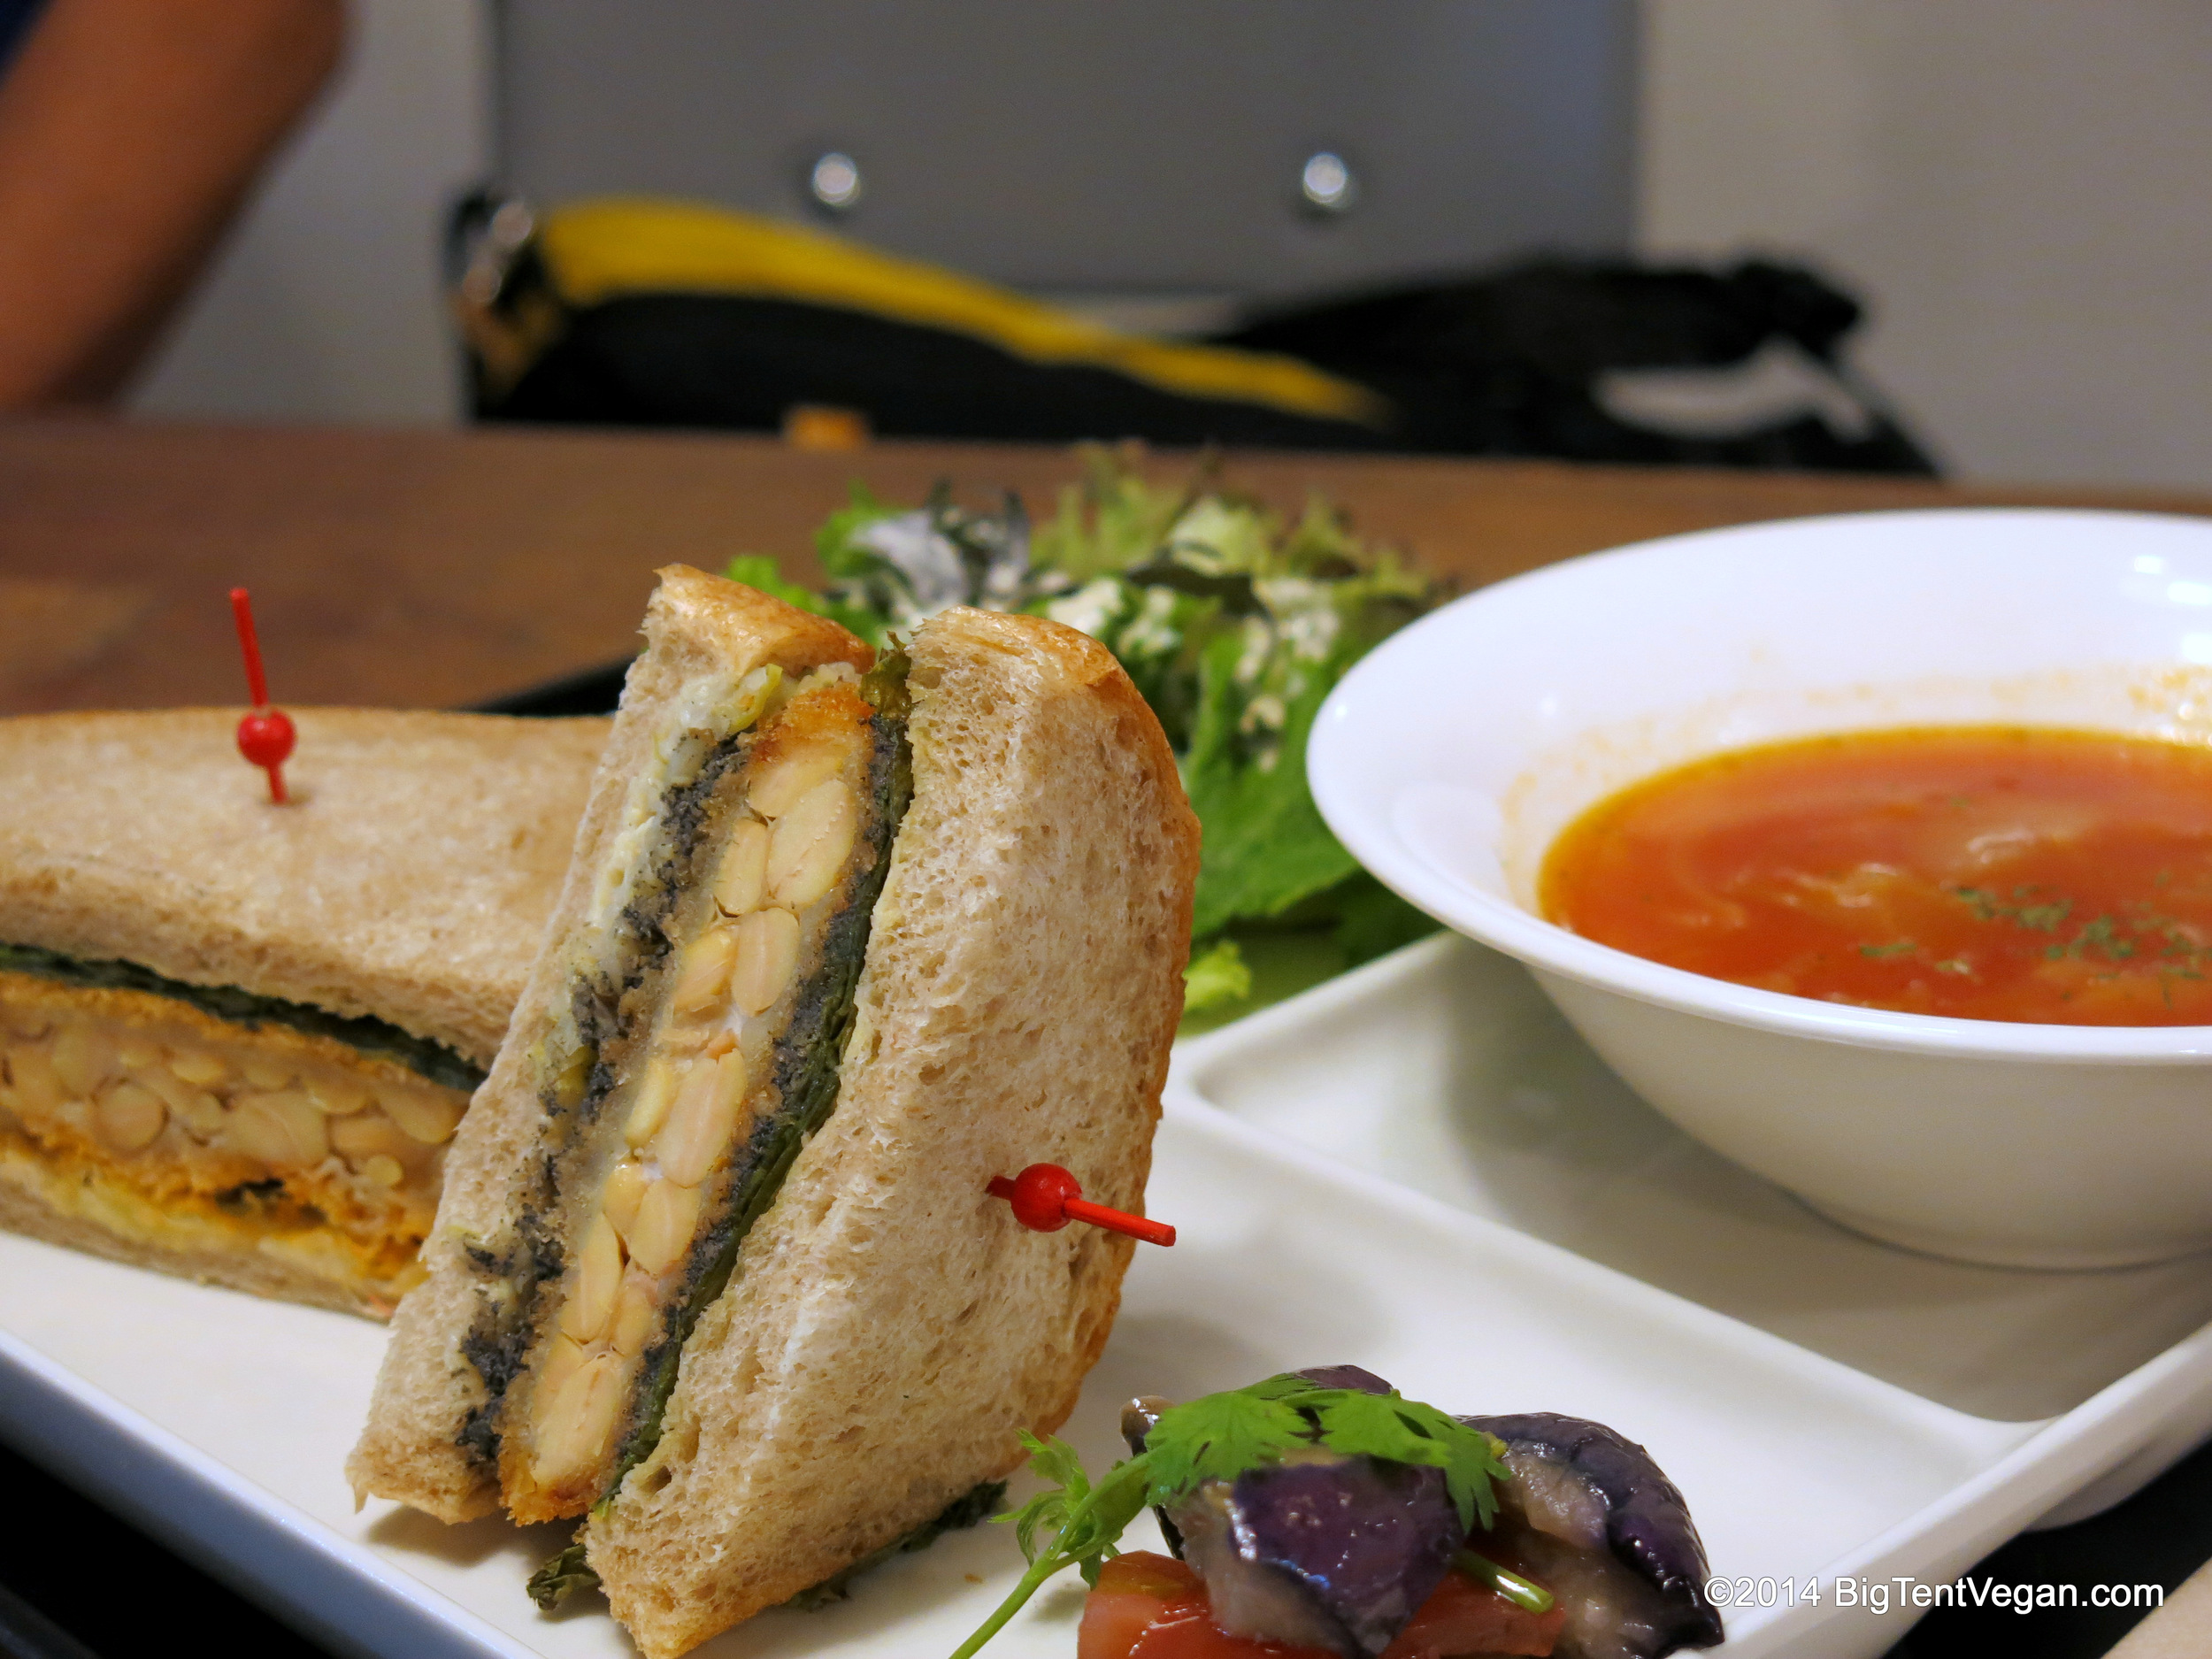 Deep-fried Crispy Tempeh Sandwich with Fresh Green Salad, Tomato Soup, and Pickled Eggplant. Notice each half-sandwich came with a different spread...one had a green pesto spread, and the other a pinkish tomato spread.